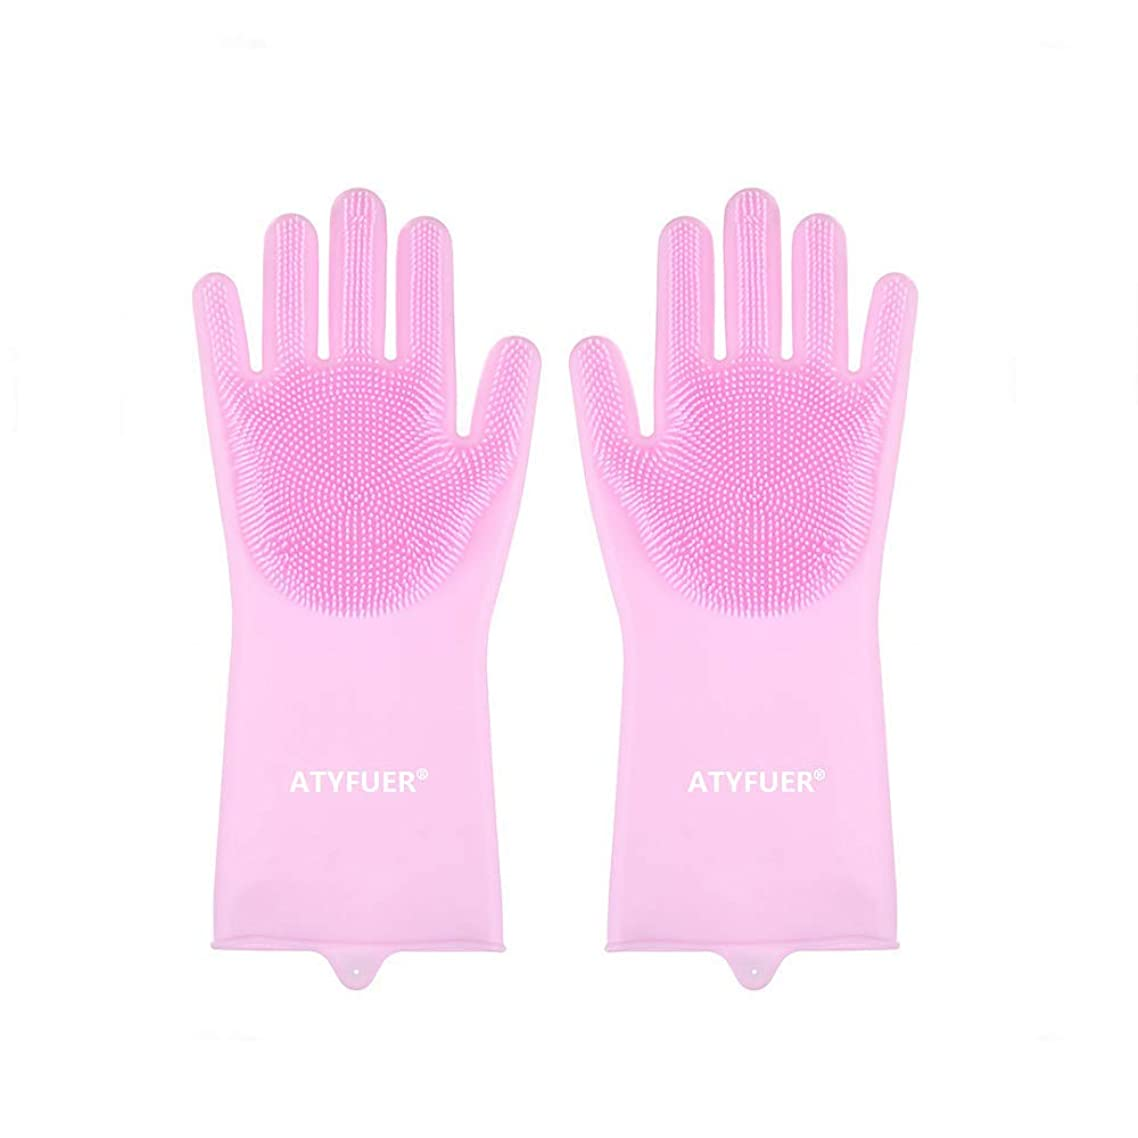 Ingenuitstore - Multifunctional Magic Silicone Gloves, Silicone Dishwashing Gloves, Kitchen Cleaning Gloves, Bathroom Cleaning, Household Cleaning, Heat Resistant Oven Gloves (Pink)